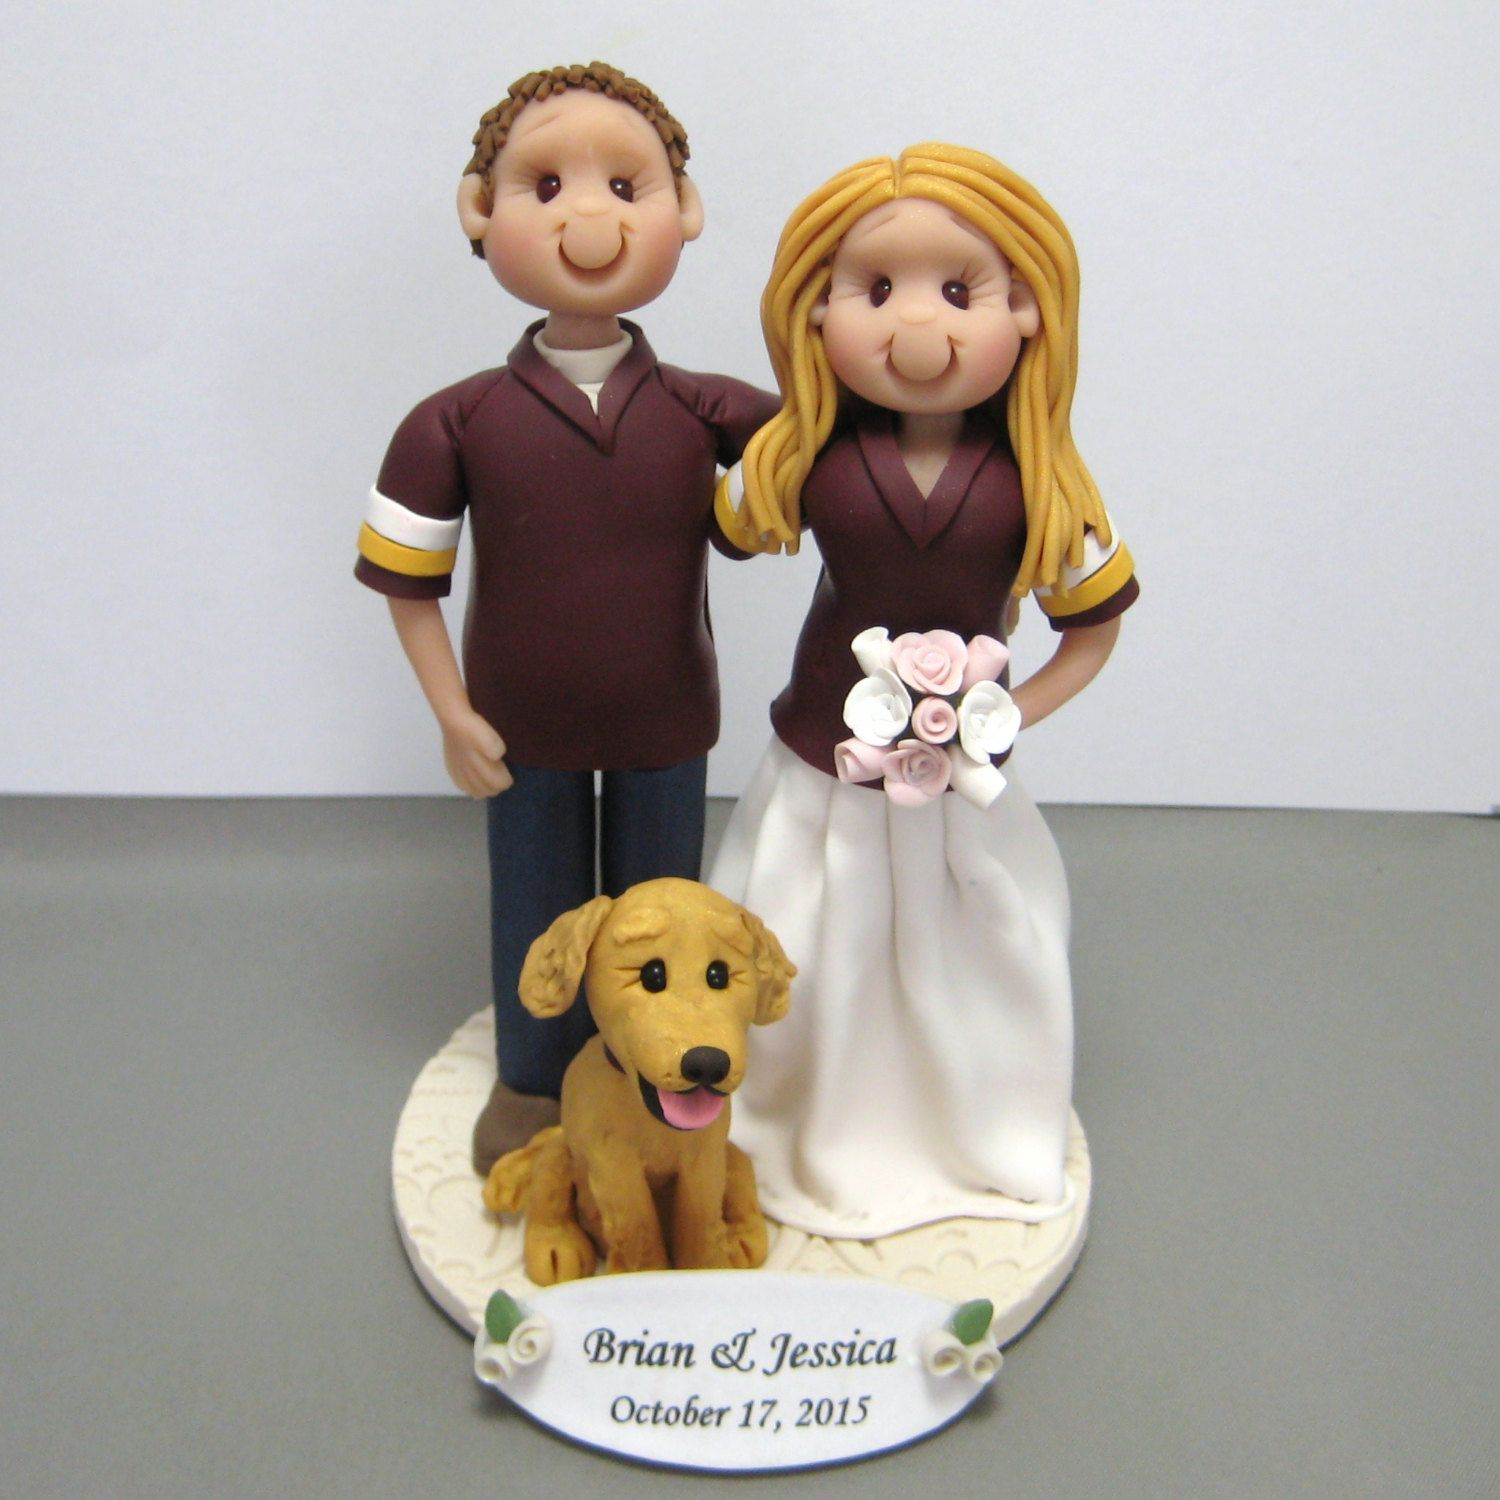 Reserved For Diane Balance Due For Custom Redskins Jersey Wedding Cake Topper With Golden Retrie Wedding Cake Toppers Wedding Cakes Custom Wedding Cake Toppers